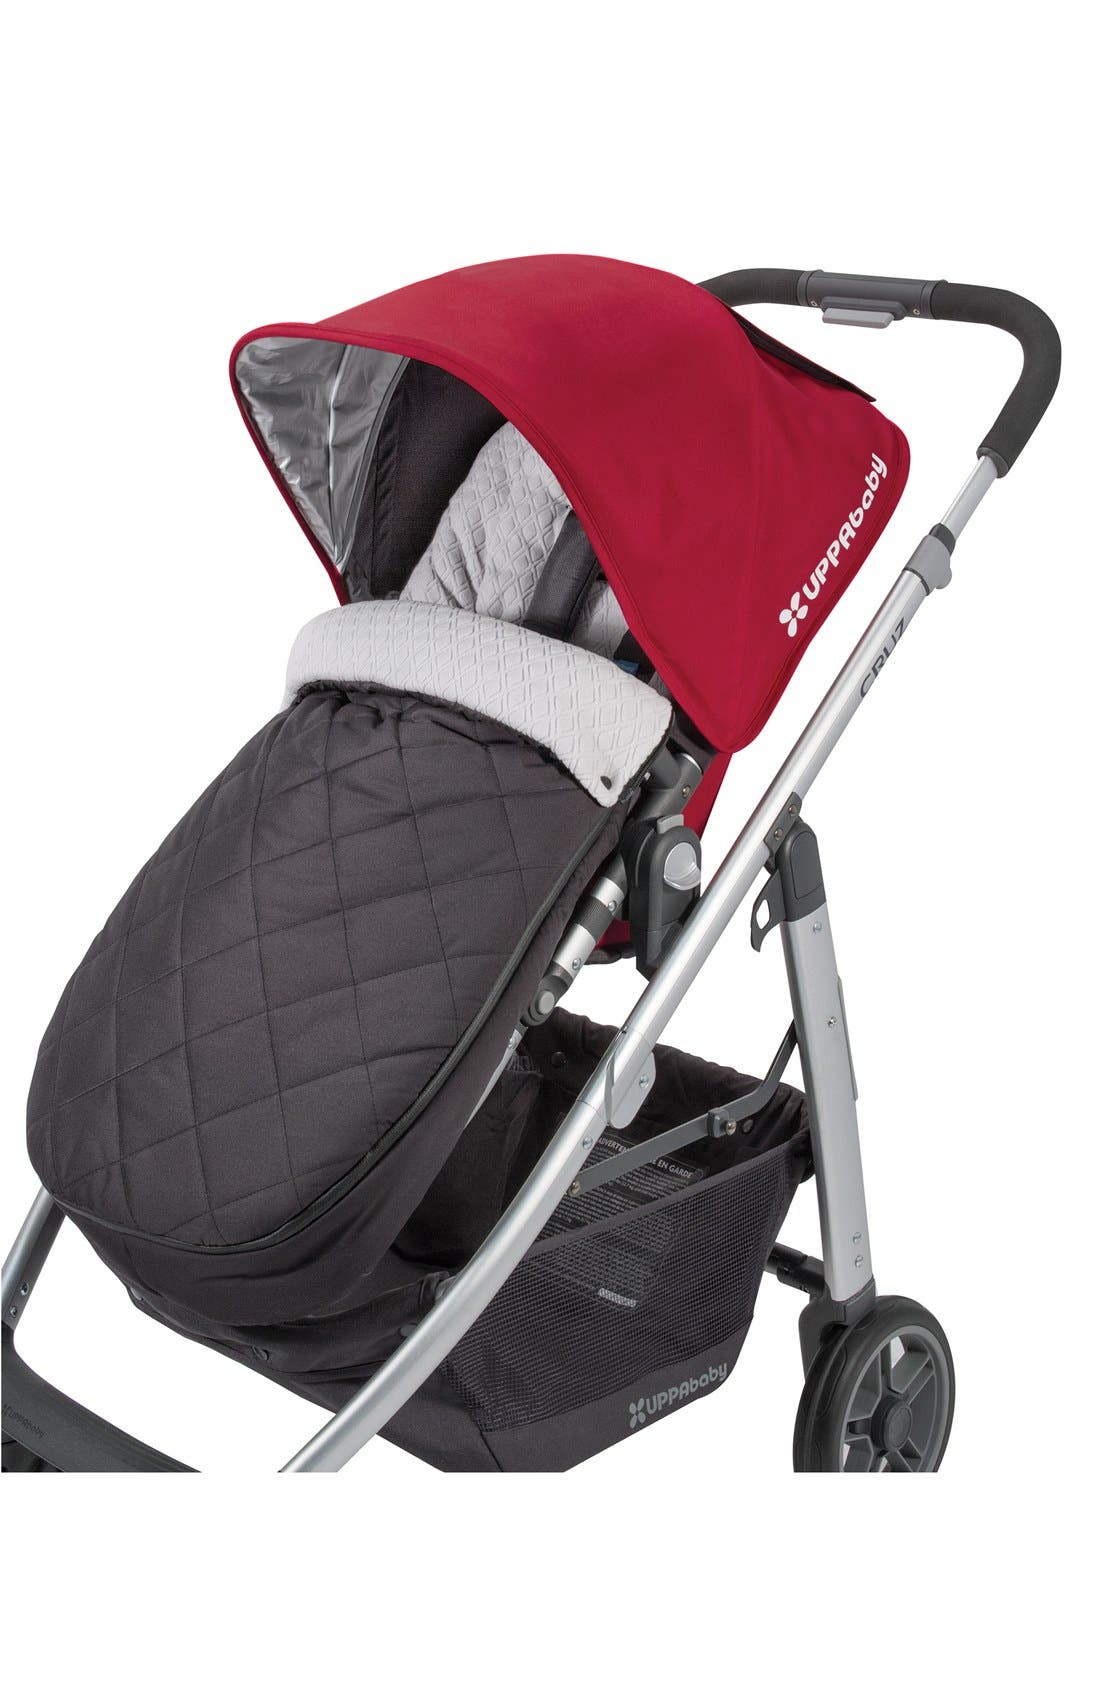 Alternate Image 1 Selected - UPPAbaby 'CozyGanoosh - Jake' Water Resistant & Insulated Stroller Footmuff